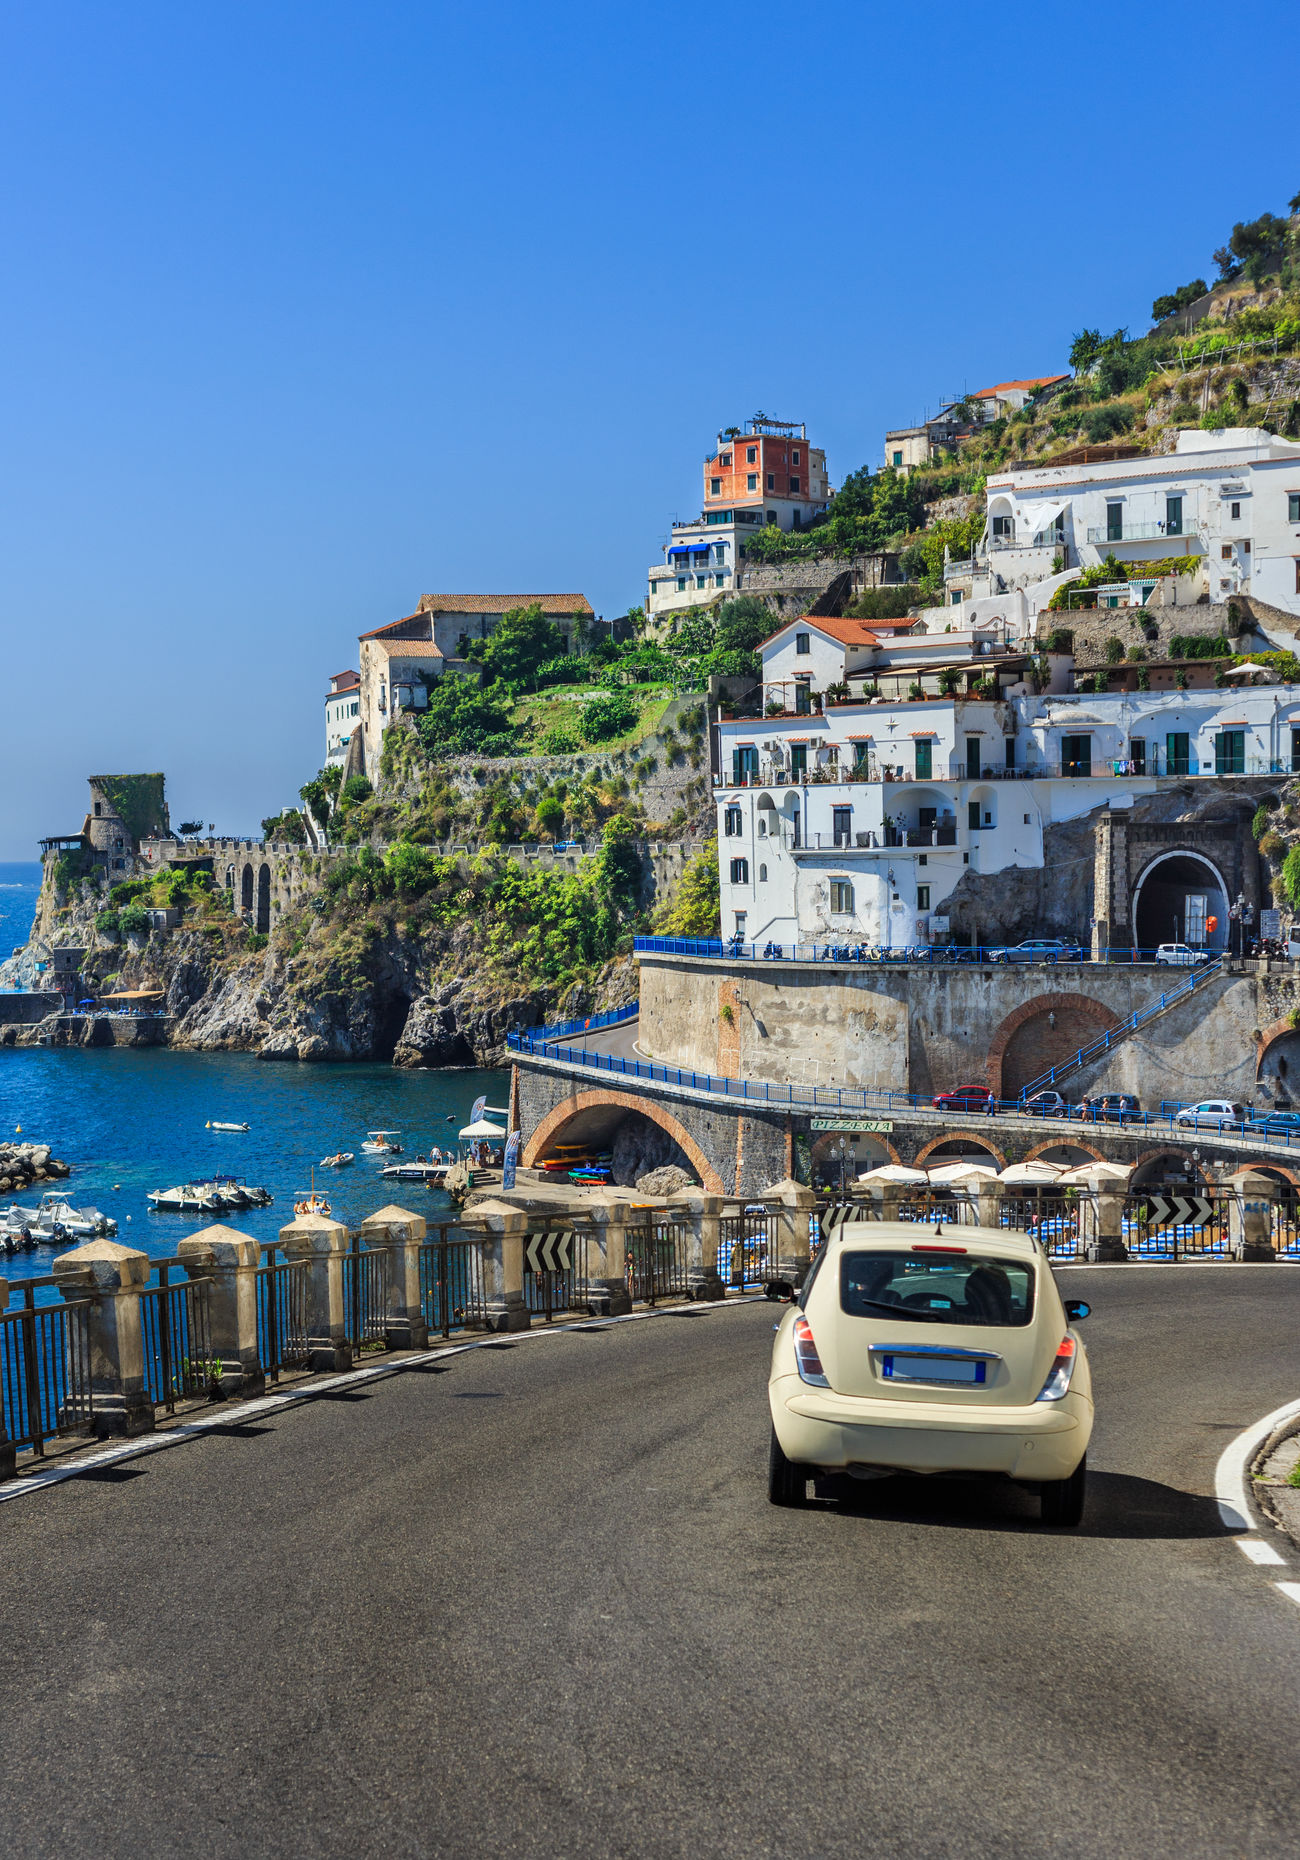 Atrani road at Amalfi Coast Architecture Blue Building Built Structure Canal City City Life Clear Sky Day Diminishing Perspective Mode Of Transport No People Outdoors Parking Residential Building Residential District Road Sky The Way Forward